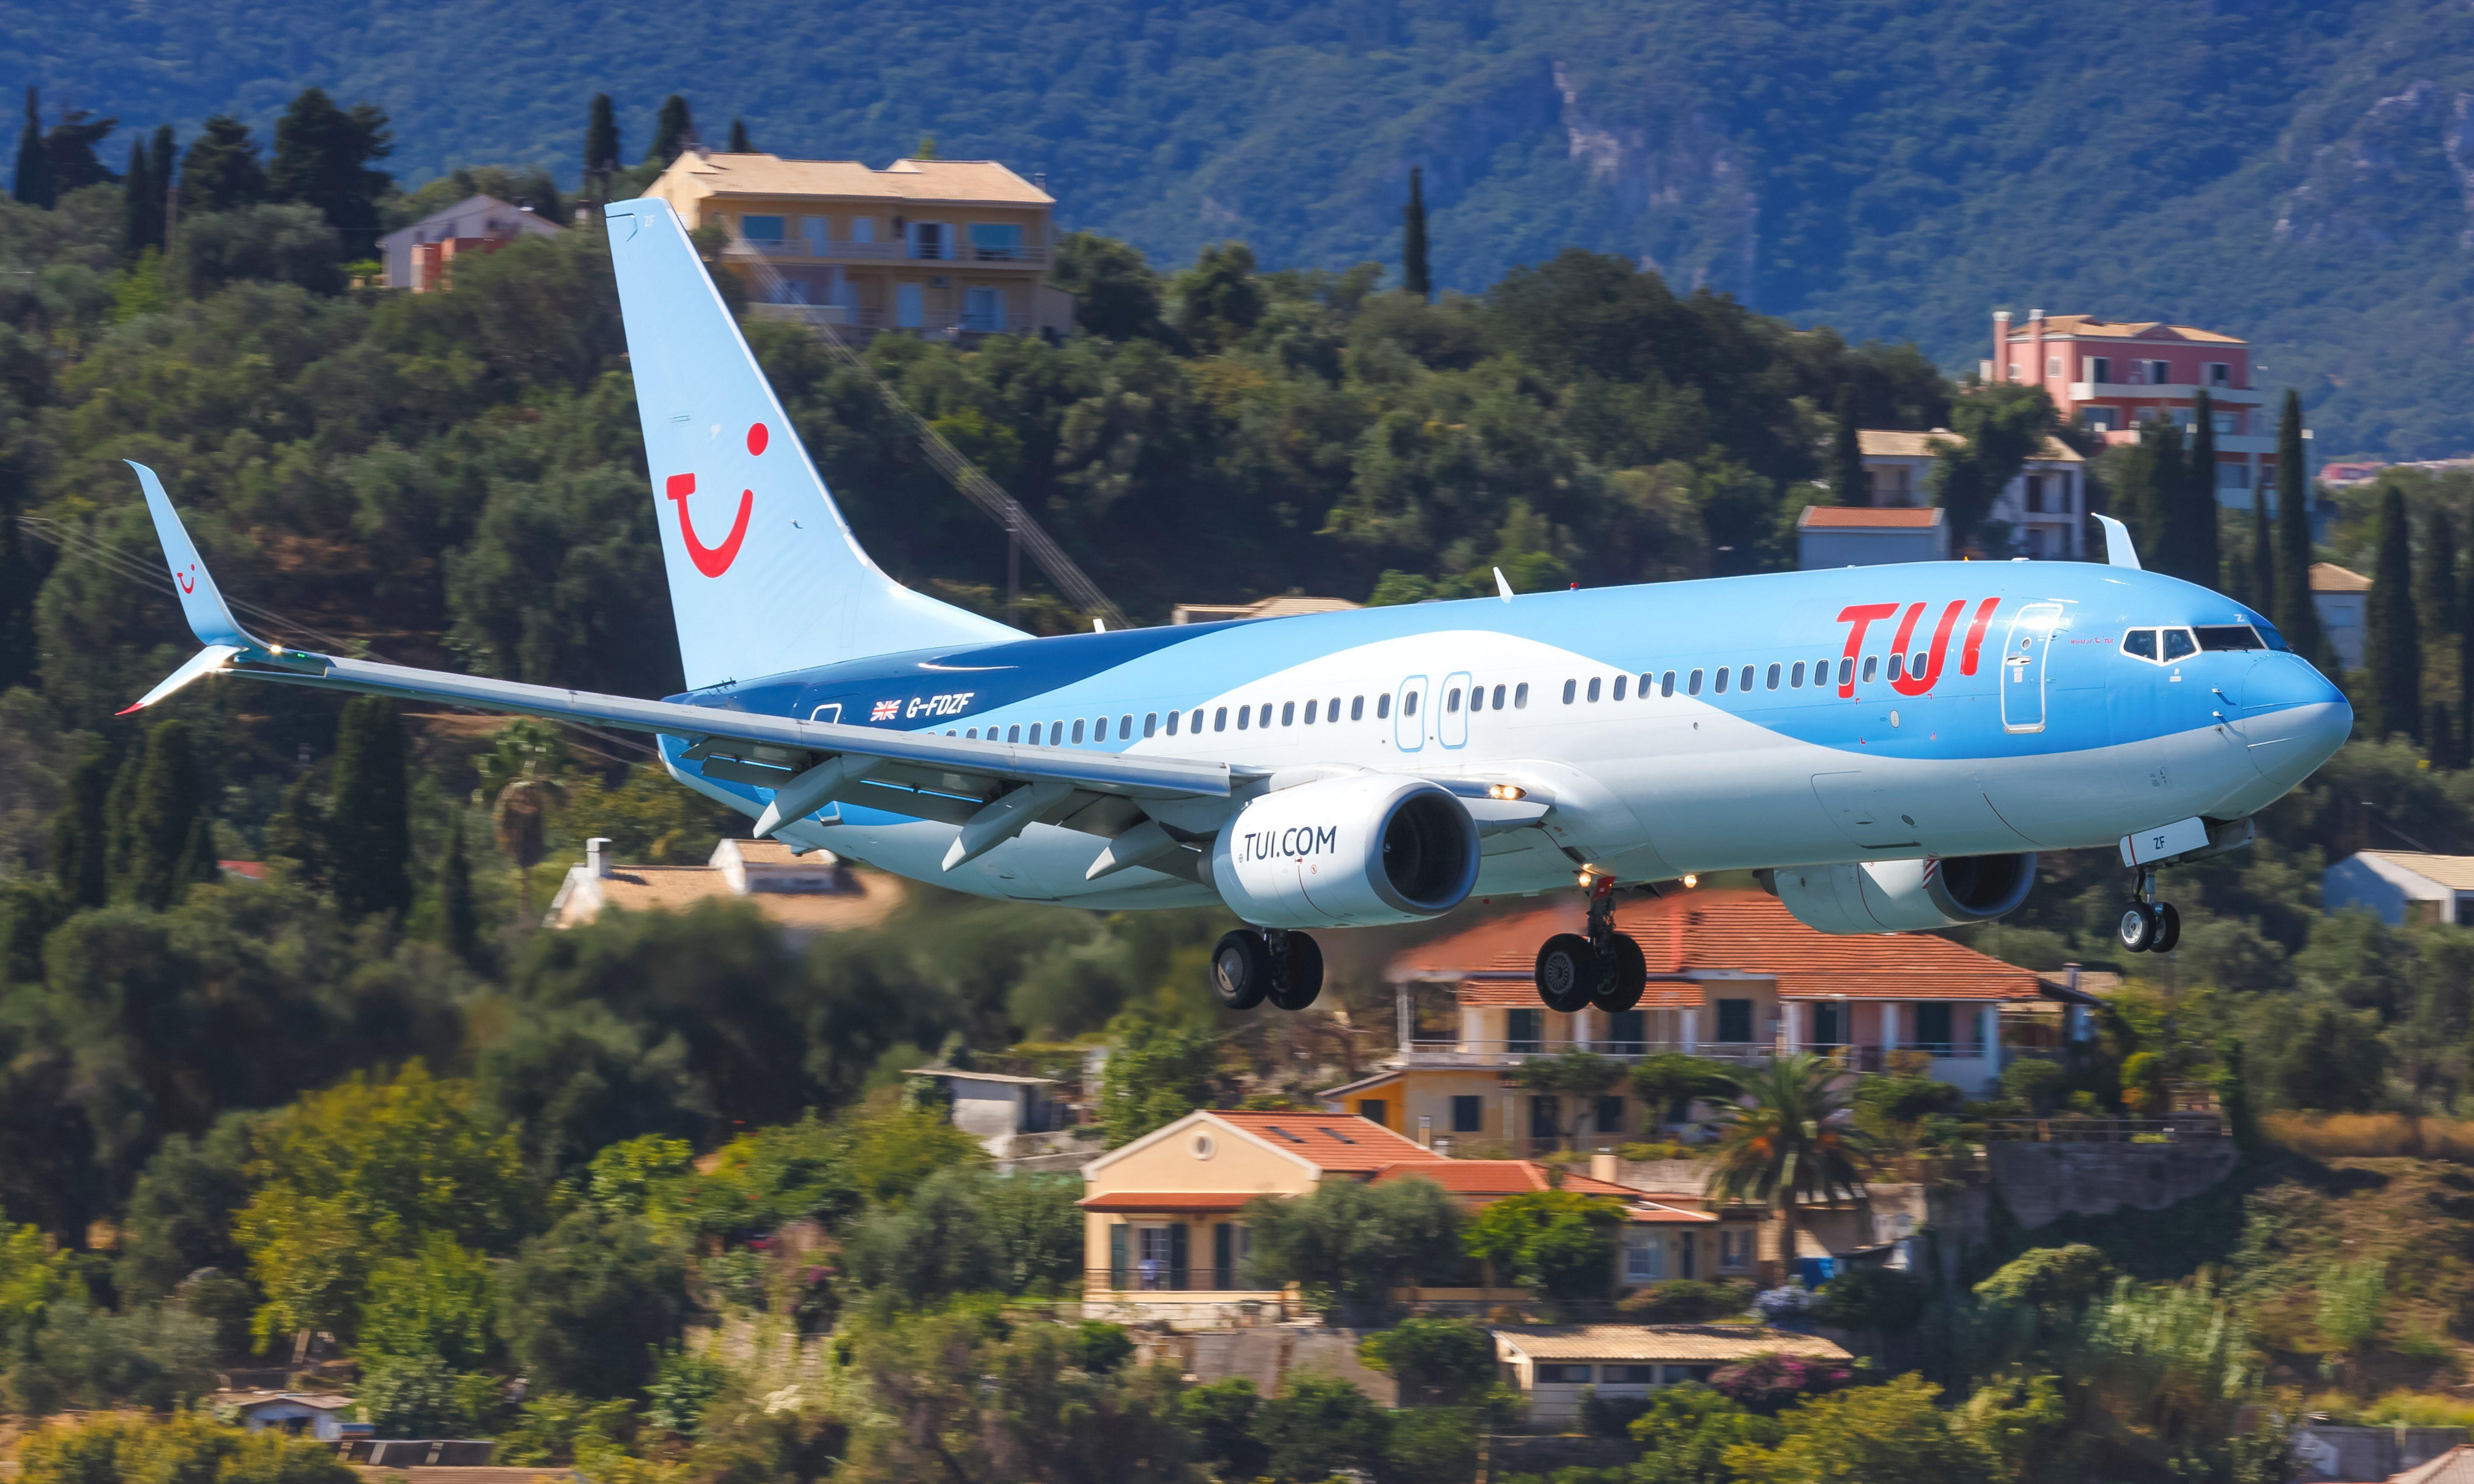 I had to cancel a trip after a death … but Tui made me pay